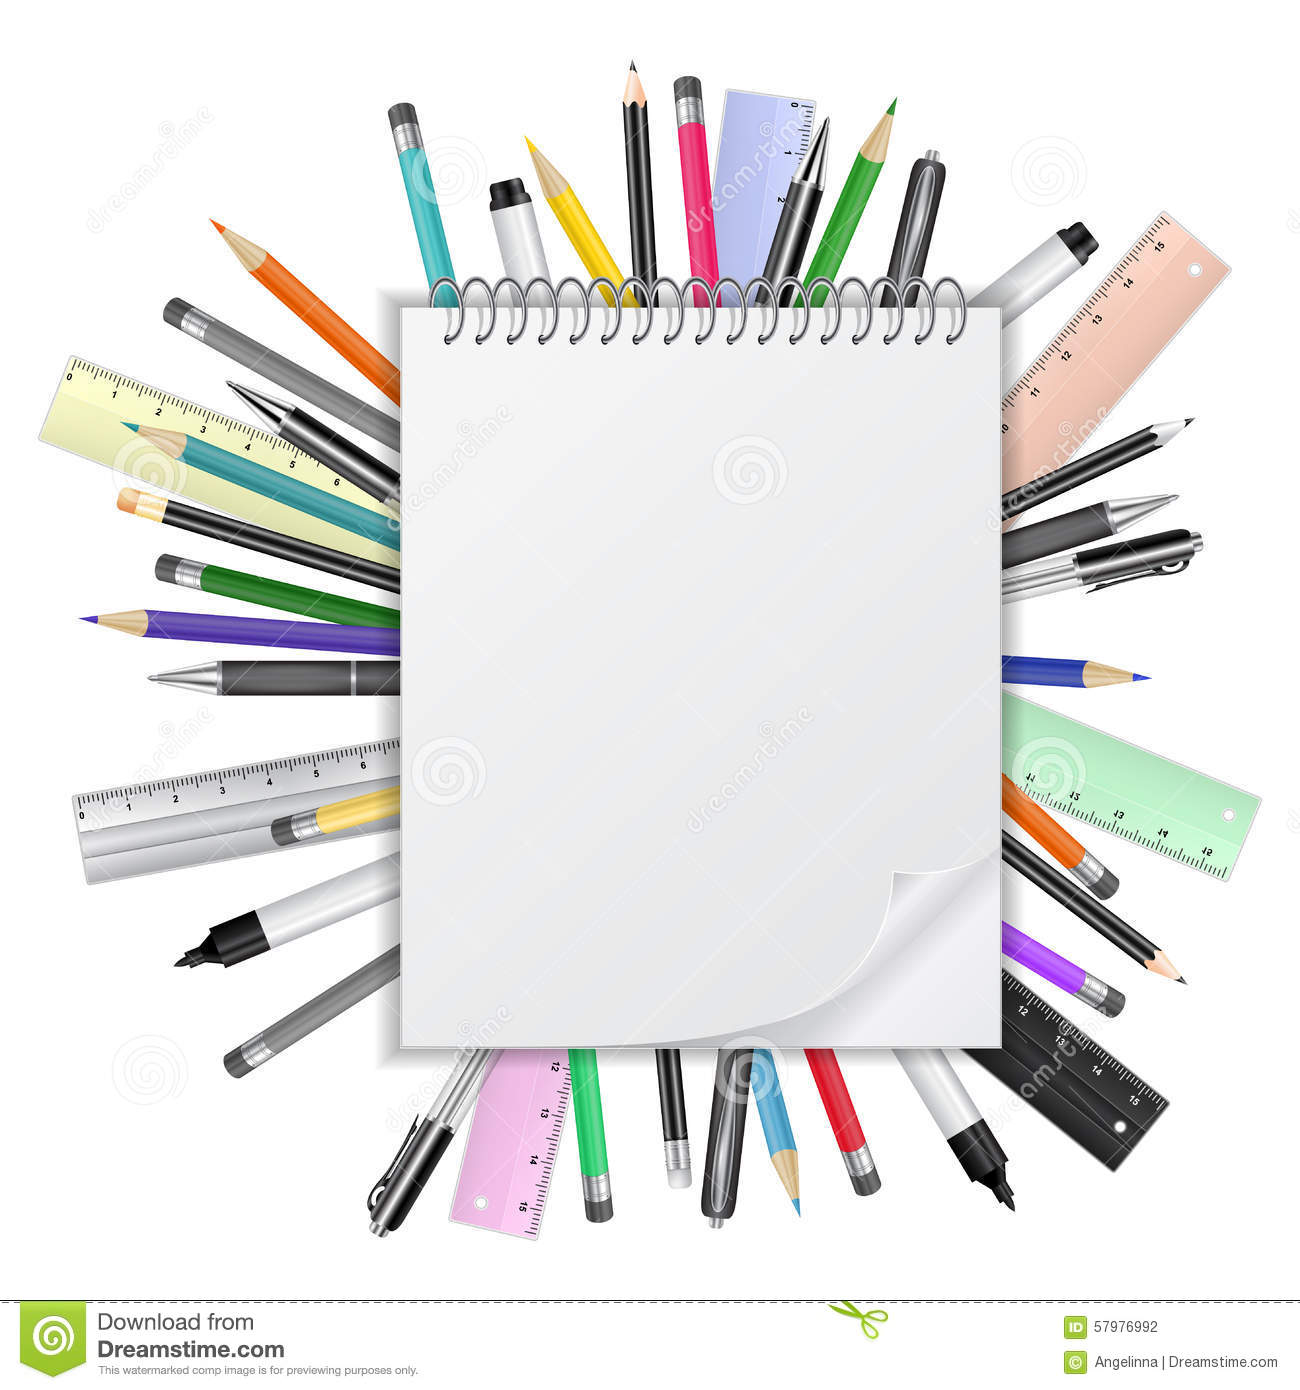 Stationary Stock Vector - Image: 57976992